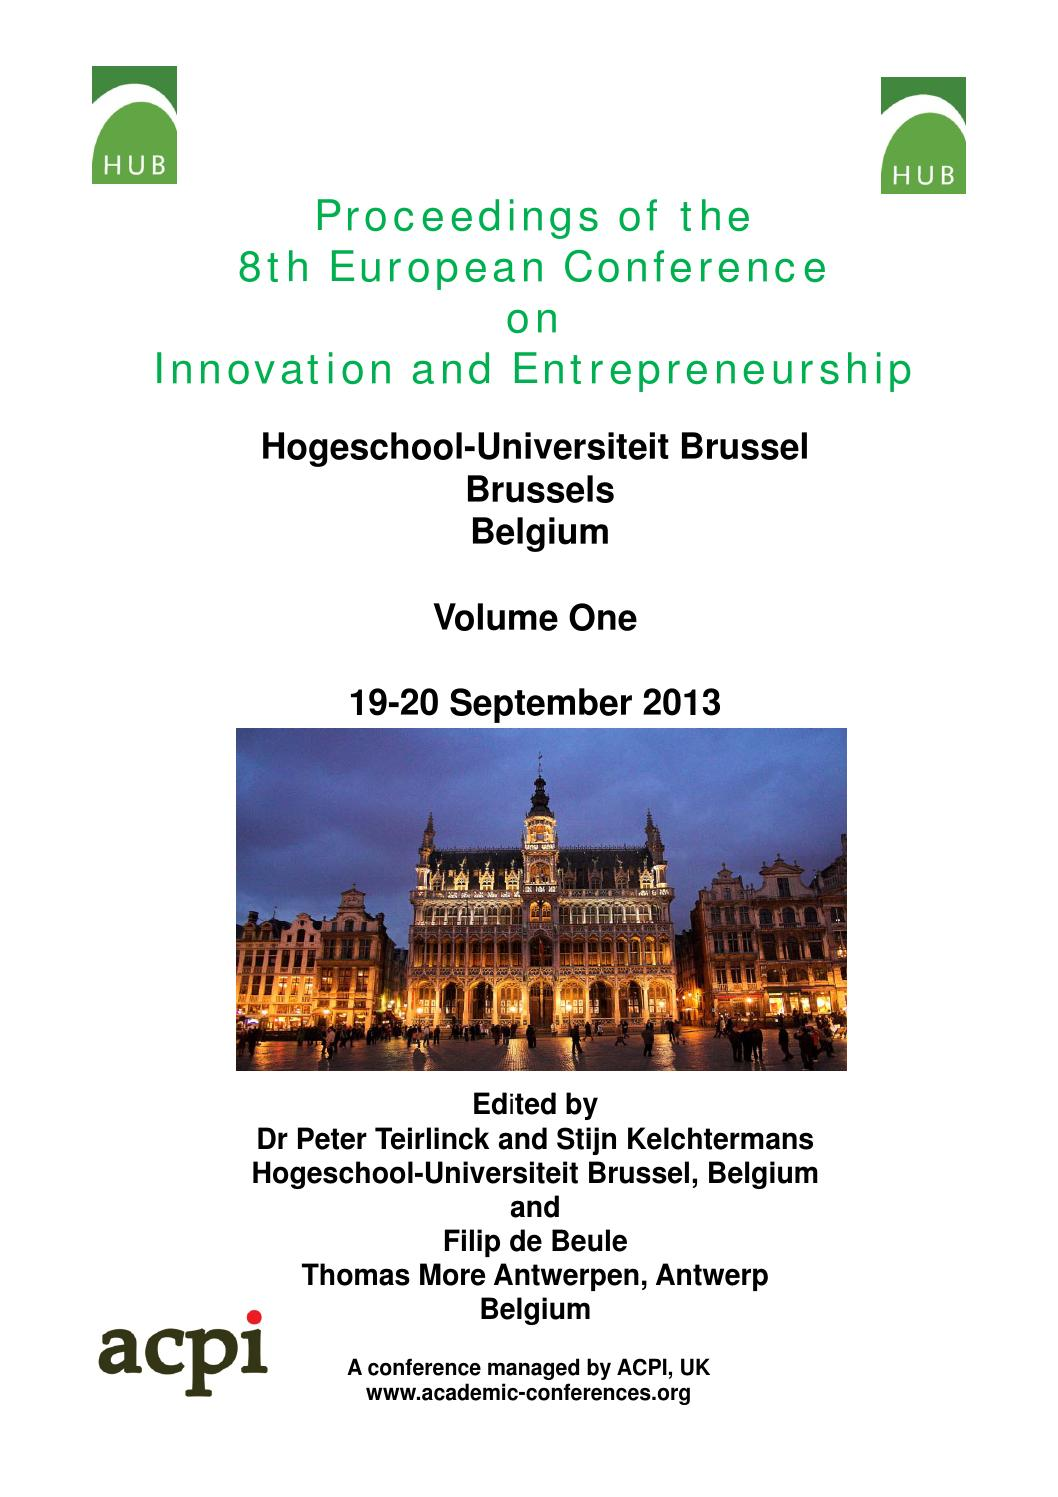 Pproceedings of the 8th european conference on innovation and pproceedings of the 8th european conference on innovation and entrepreneurship ecie 2013 volume 1 by acpil issuu fandeluxe Images